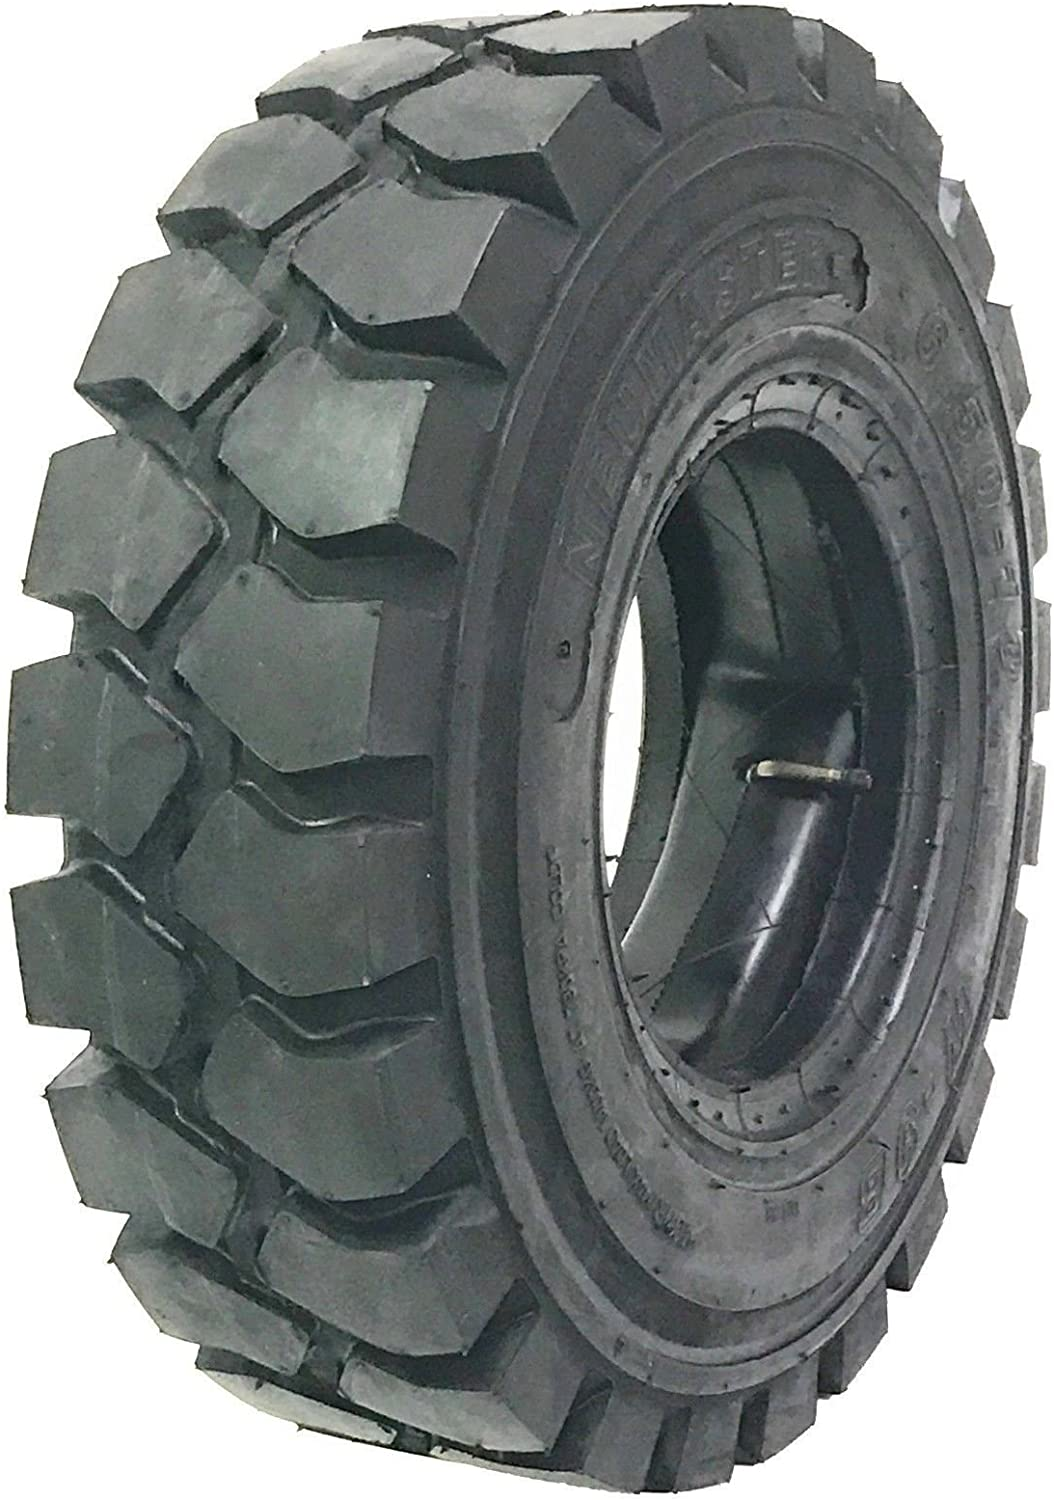 Tractor Inner Tube with TR75A Valve Stem Trans American 7.00-12 Industrial Forklift